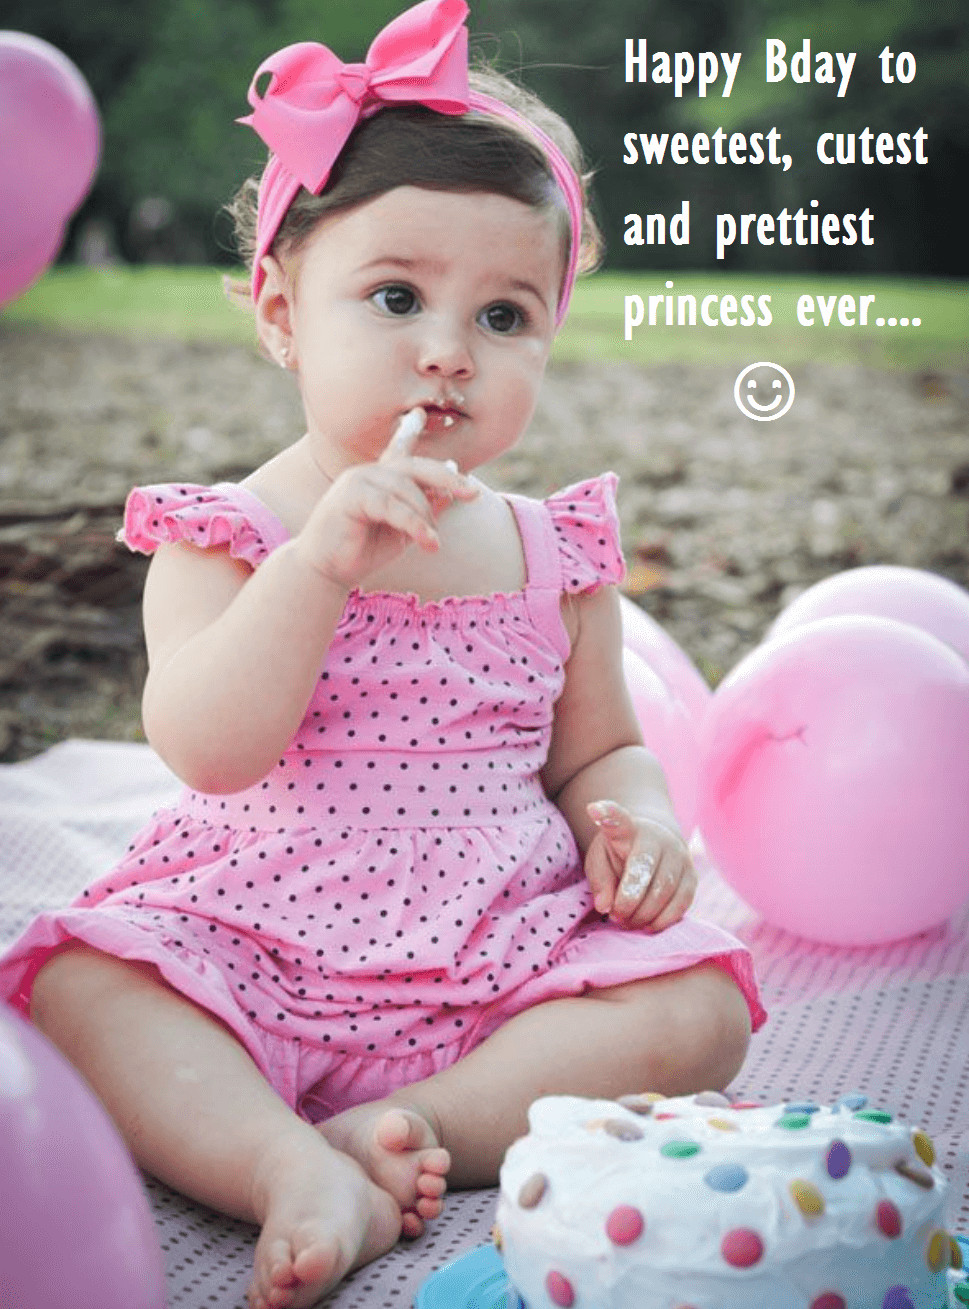 Baby Birthday Wishes  Cute Birthday Cake Wishes For Baby e Year Old